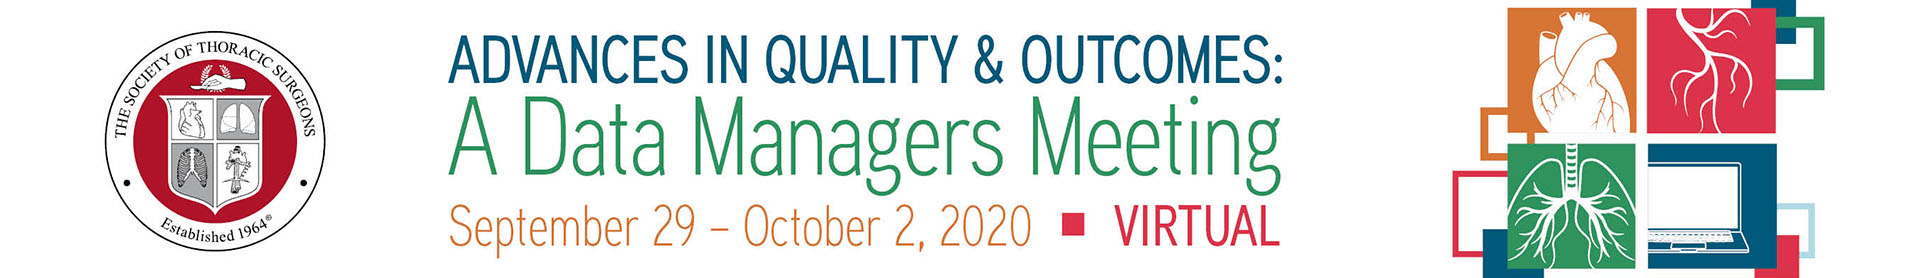 Advances in Quality & Outcomes: A Data Managers Meeting Event Banner